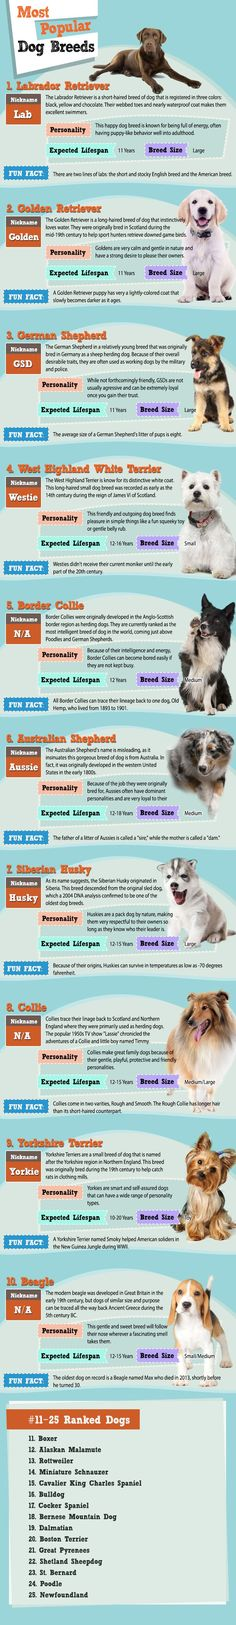 The Most Popular #Dog Breeds of 2015 - In January and February we polled people from around the world, asking them to vote for their favorite dog breed. After collecting more than 17,500 votes, the top dog breeds of 2015 have been revealed!  Did your favorite breeds make it into the top? Are you surprised by a certain breed that made the cut? Tell us in the comments! #infographic